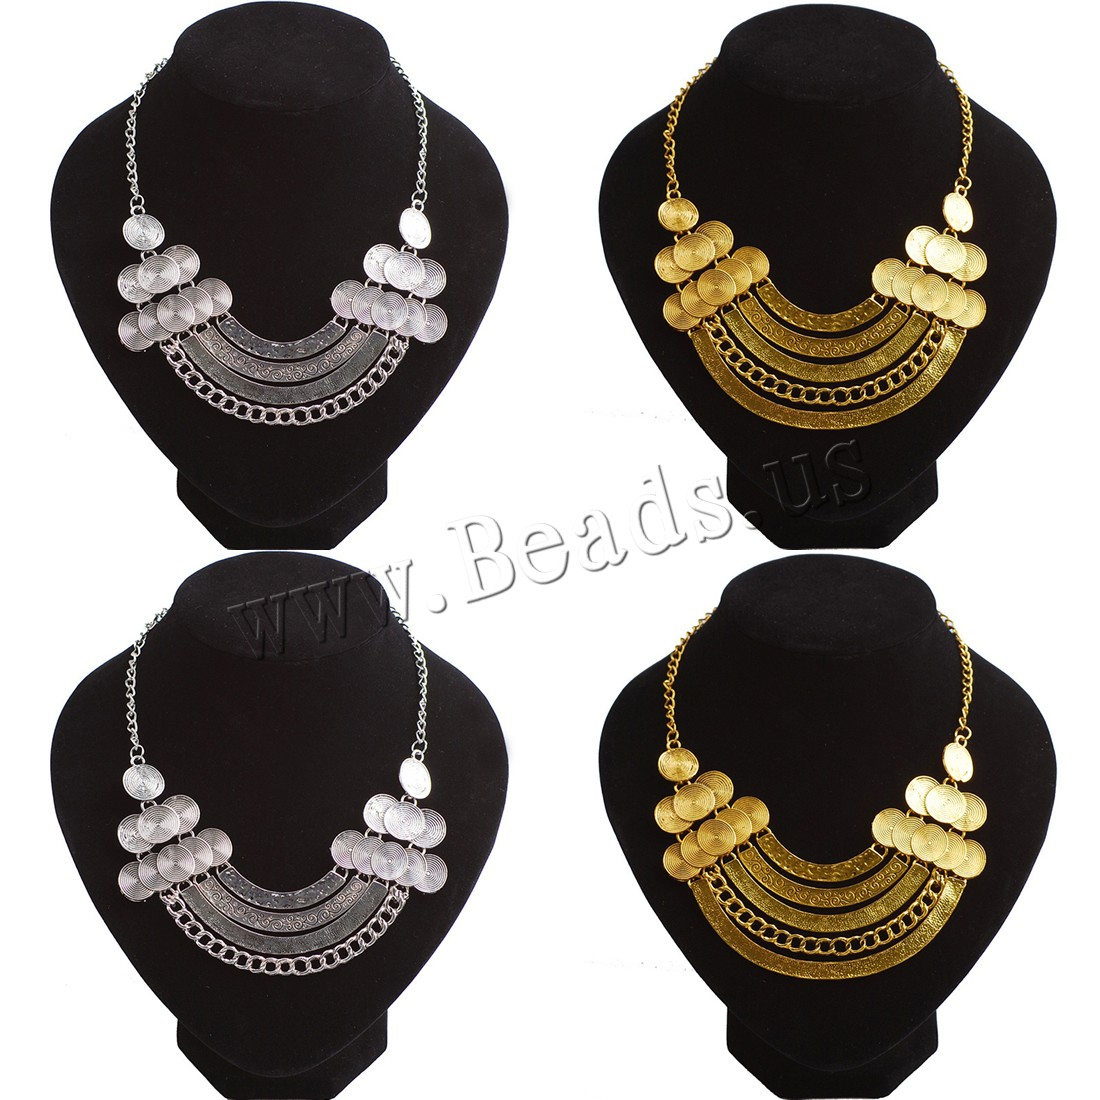 Buy Zinc Alloy Jewelry Necklace 2inch extender chain plated twist oval chain & woman & hollow colors choice nickel lead & cadmium free Sold Per Approx 17.7 Inch Strand